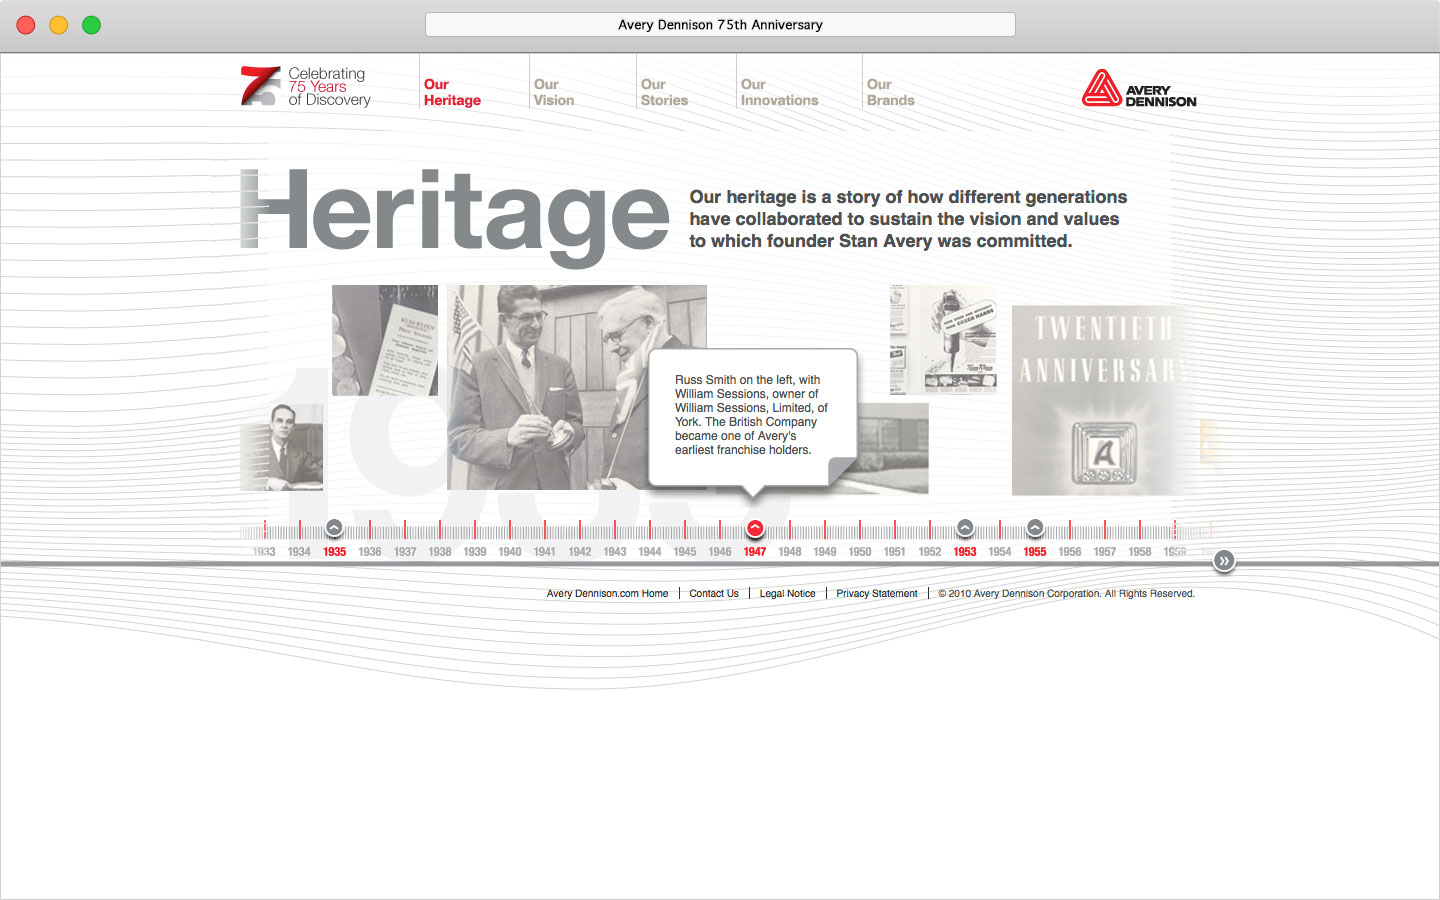 Avery Dennison 75th anniversary microsite online timeline